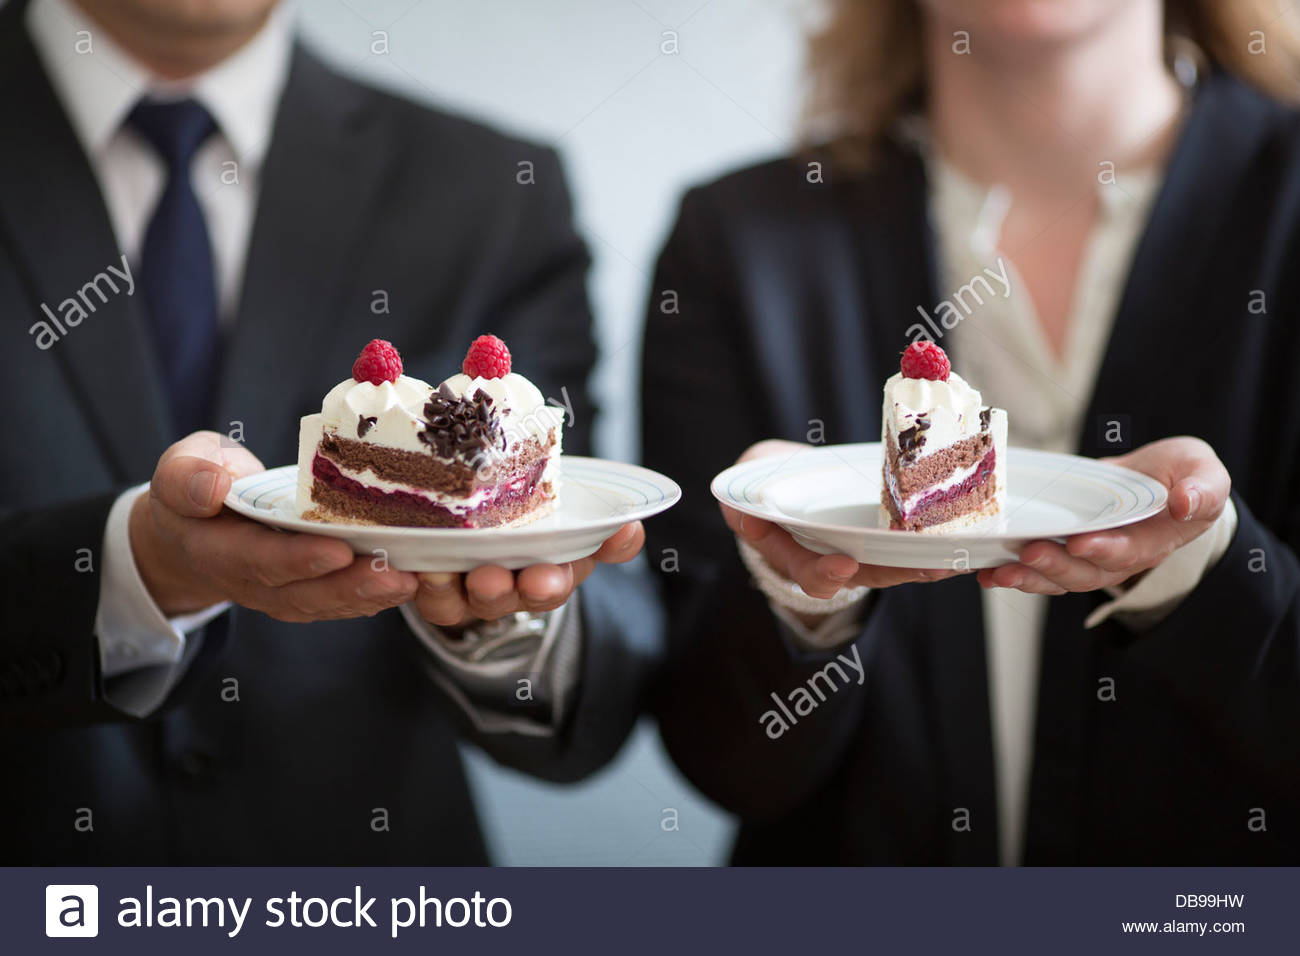 Business people holding plates of cake & Business people holding plates of cake Stock Photo: 58597445 - Alamy